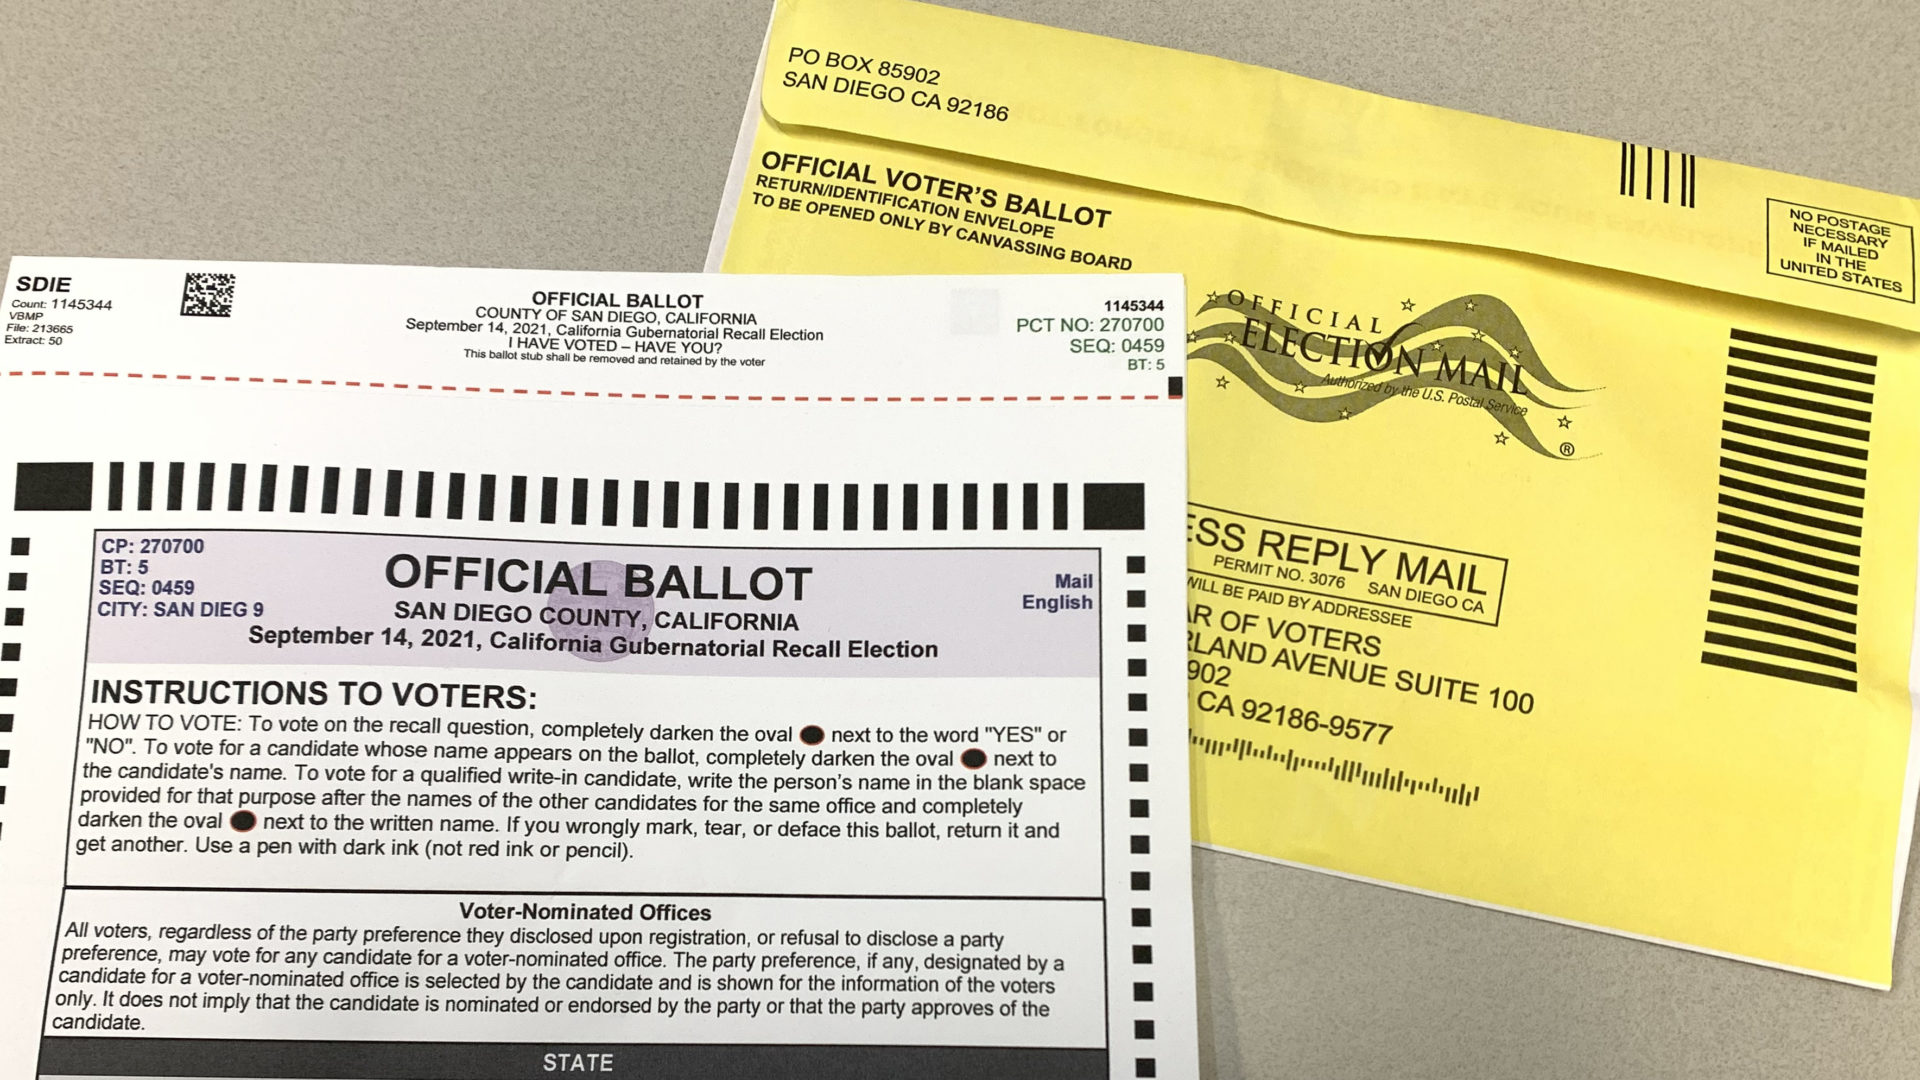 ballot with official mail-in envelope